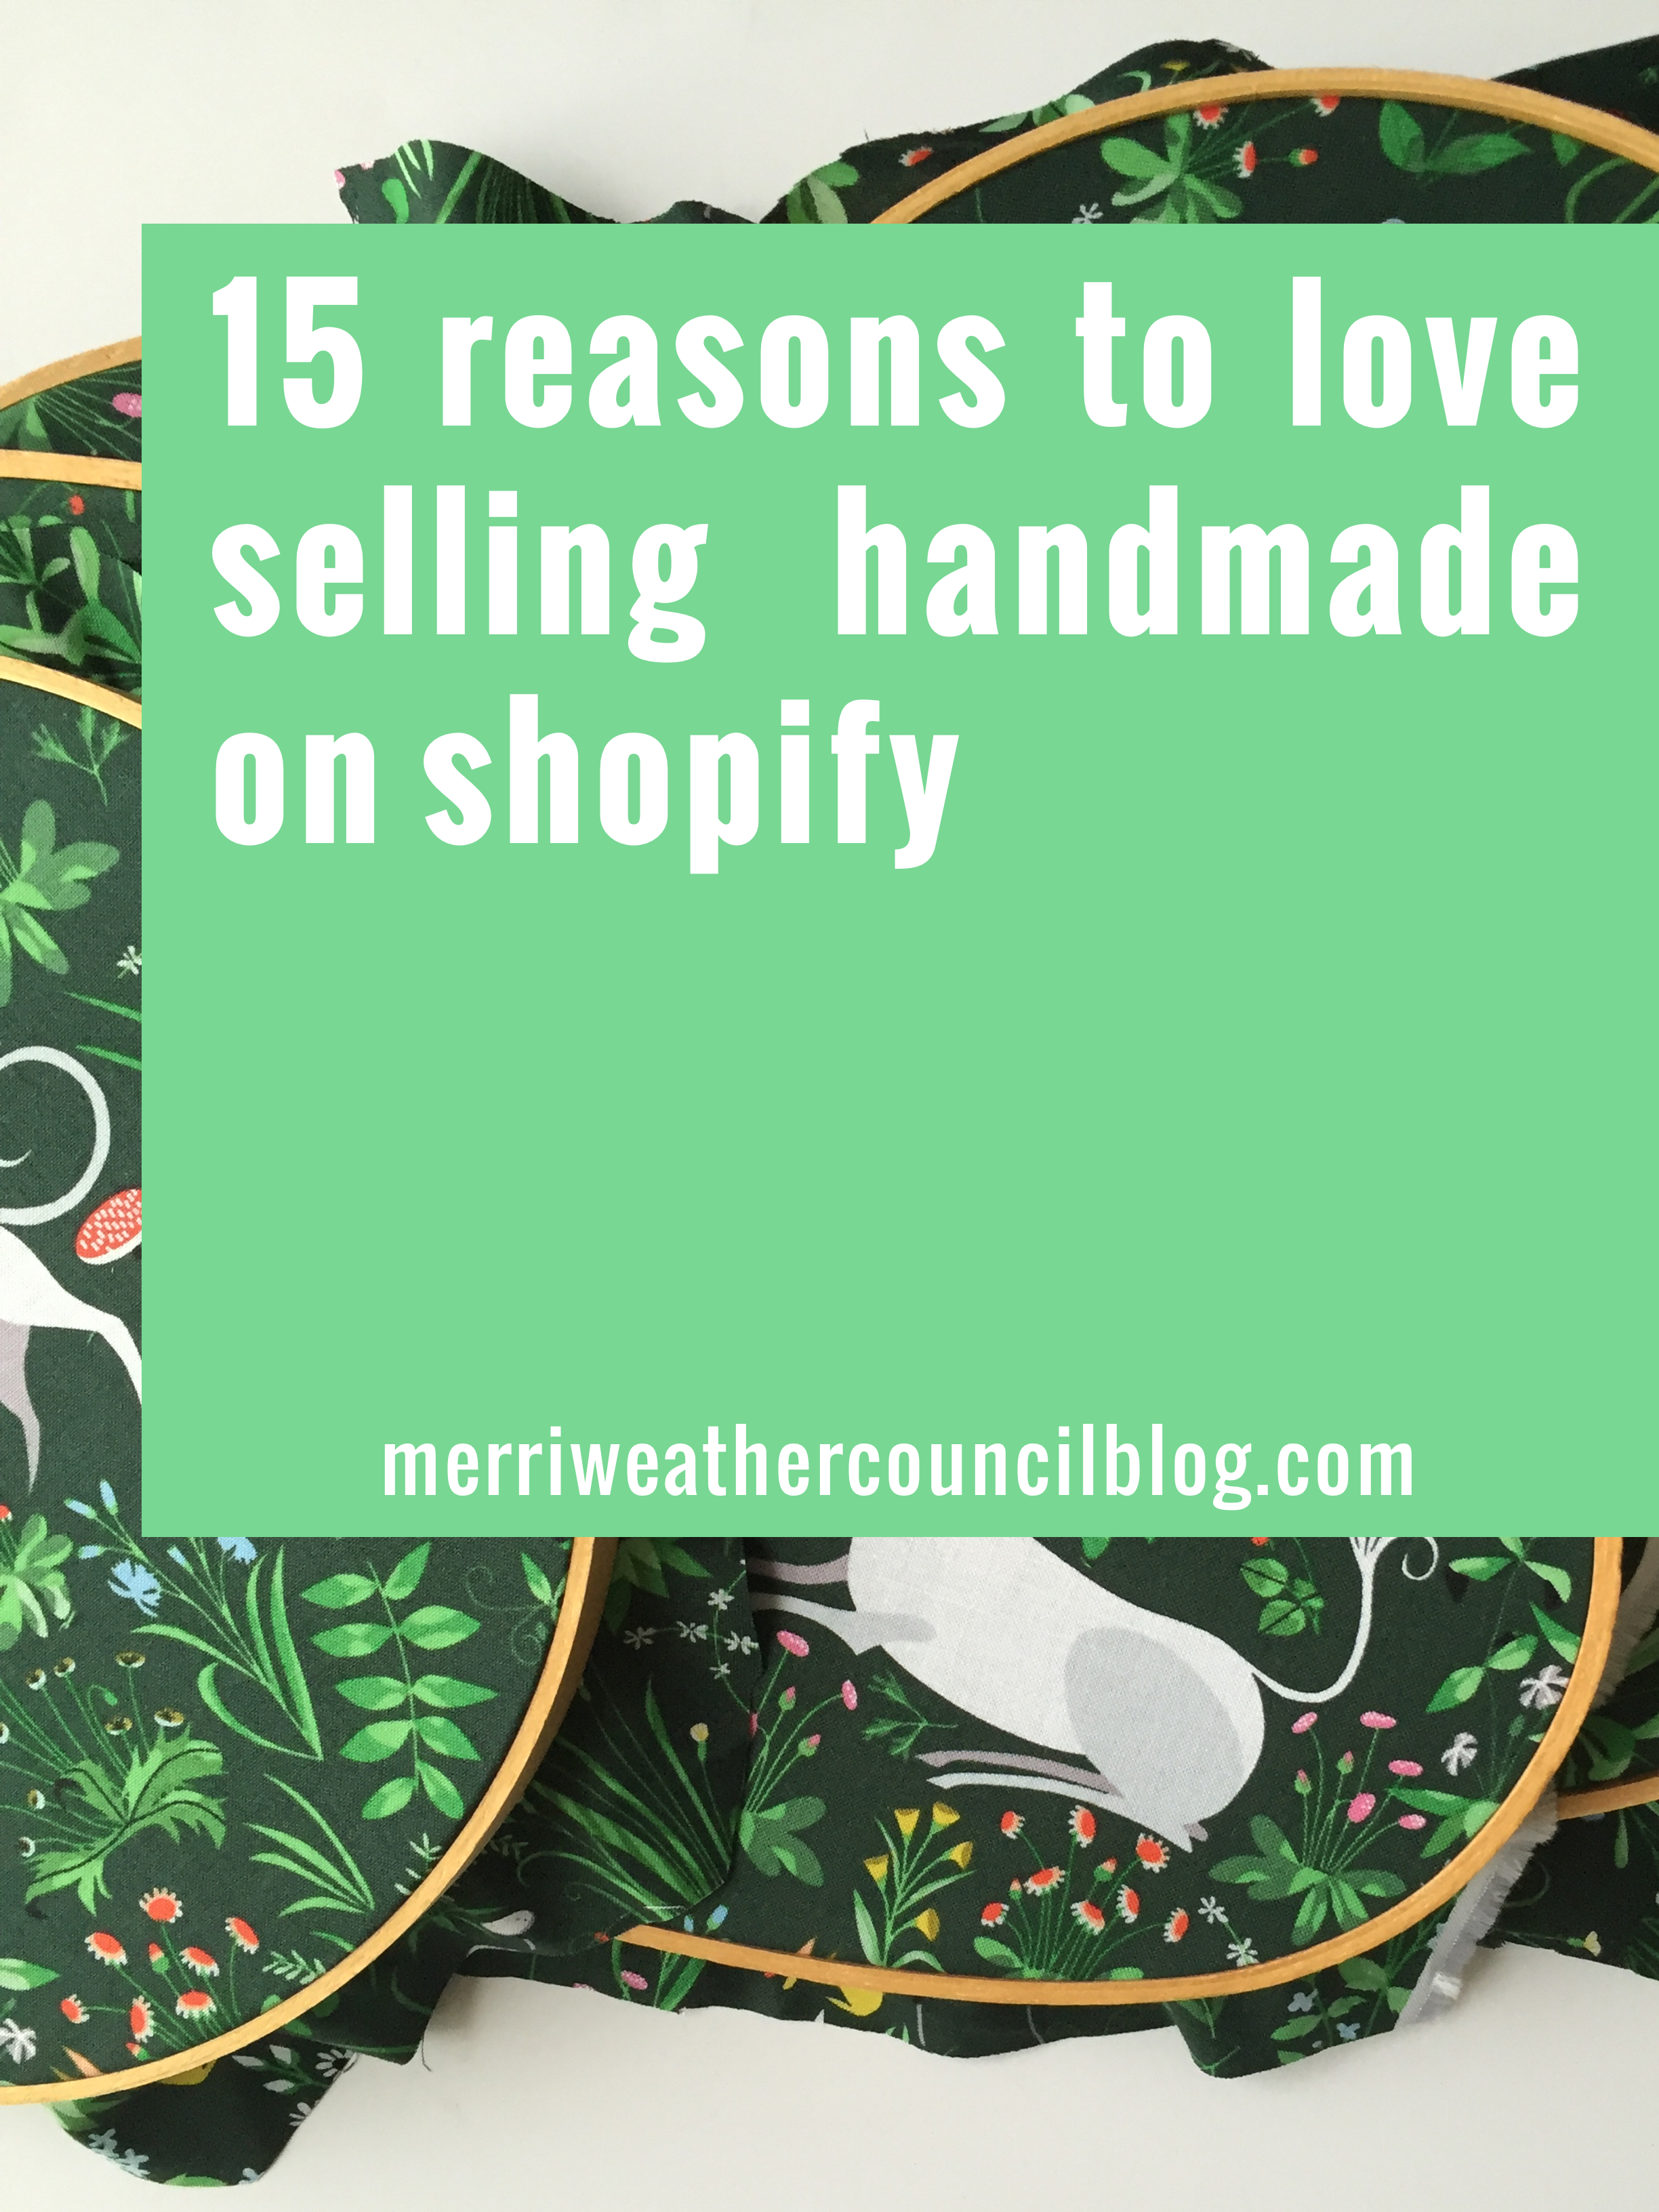 15 reasons why I love selling handmade on Shopify. The merriweather council blog's personal experience building her Shopify site. | the merriweather council blog